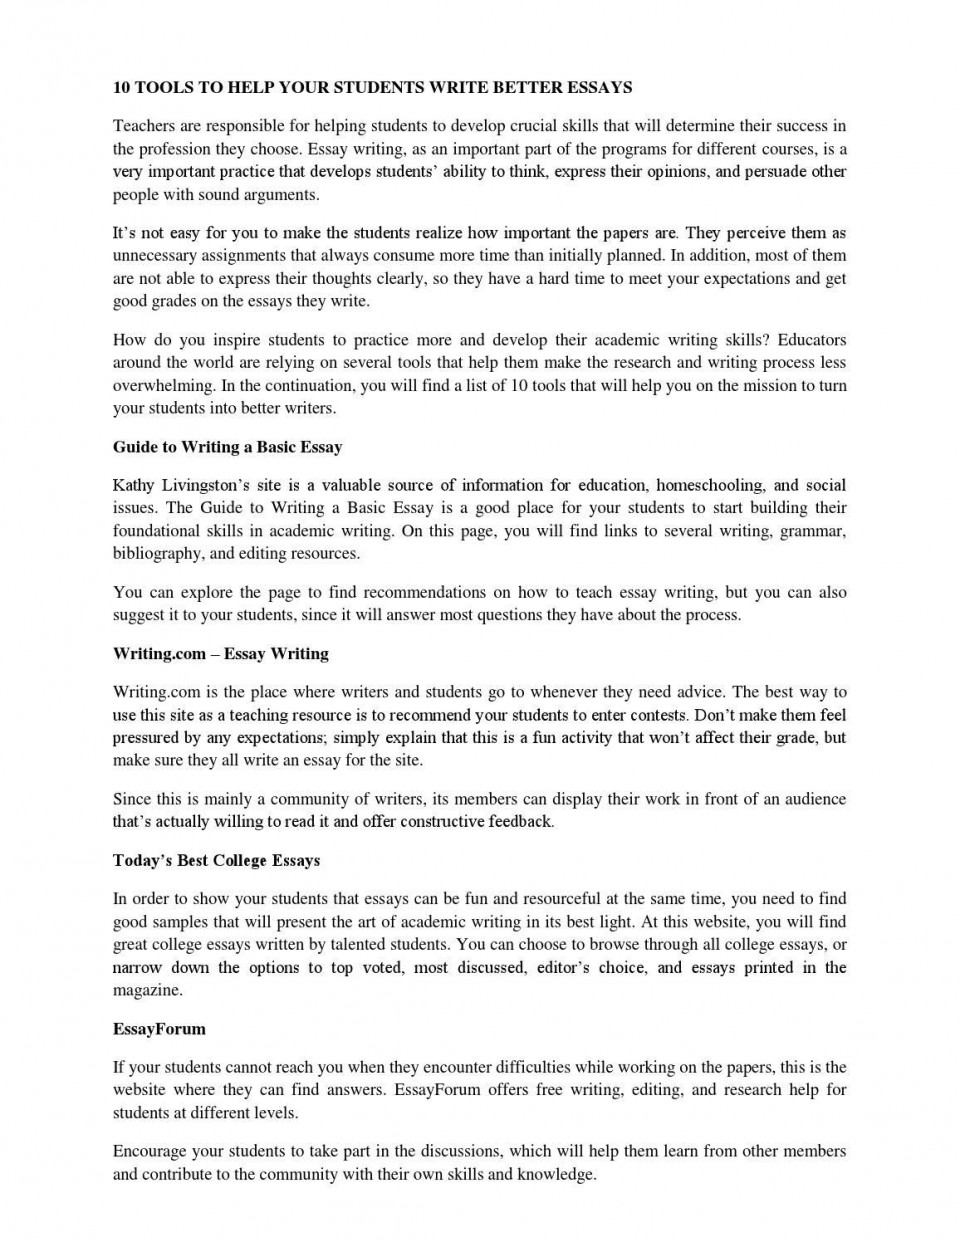 025 Essay Writing Websites Reviews For Students Editing Free Page Research Paper Example That20 Online Stirring Papers Submission Of Pdf Psychology 960